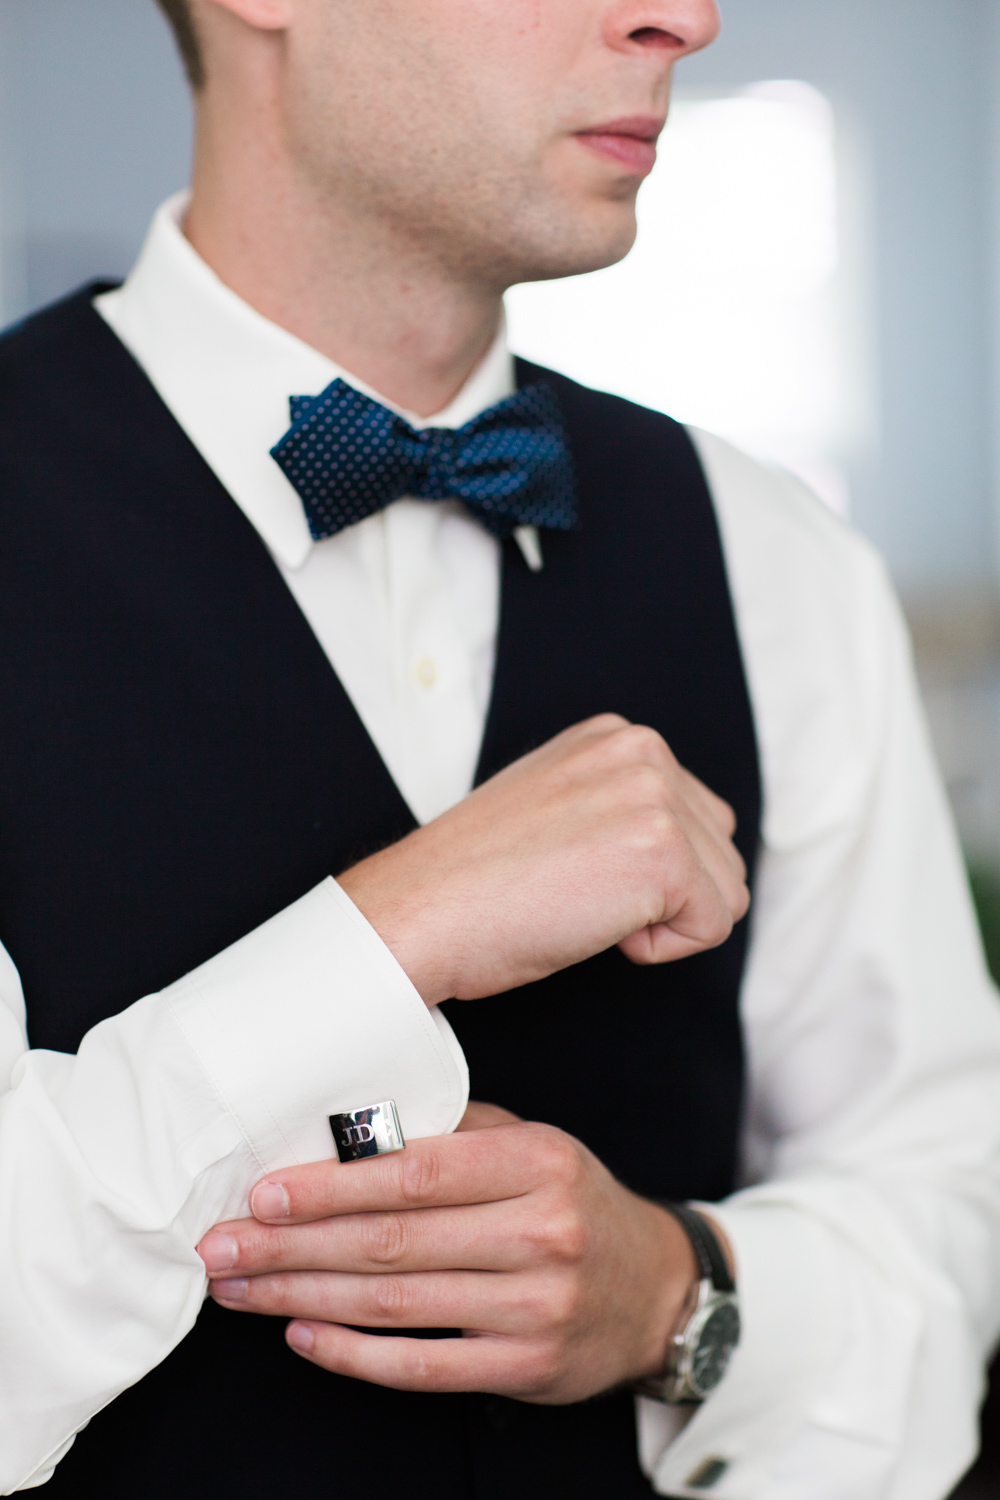 newport-wedding-suit-cuff-links